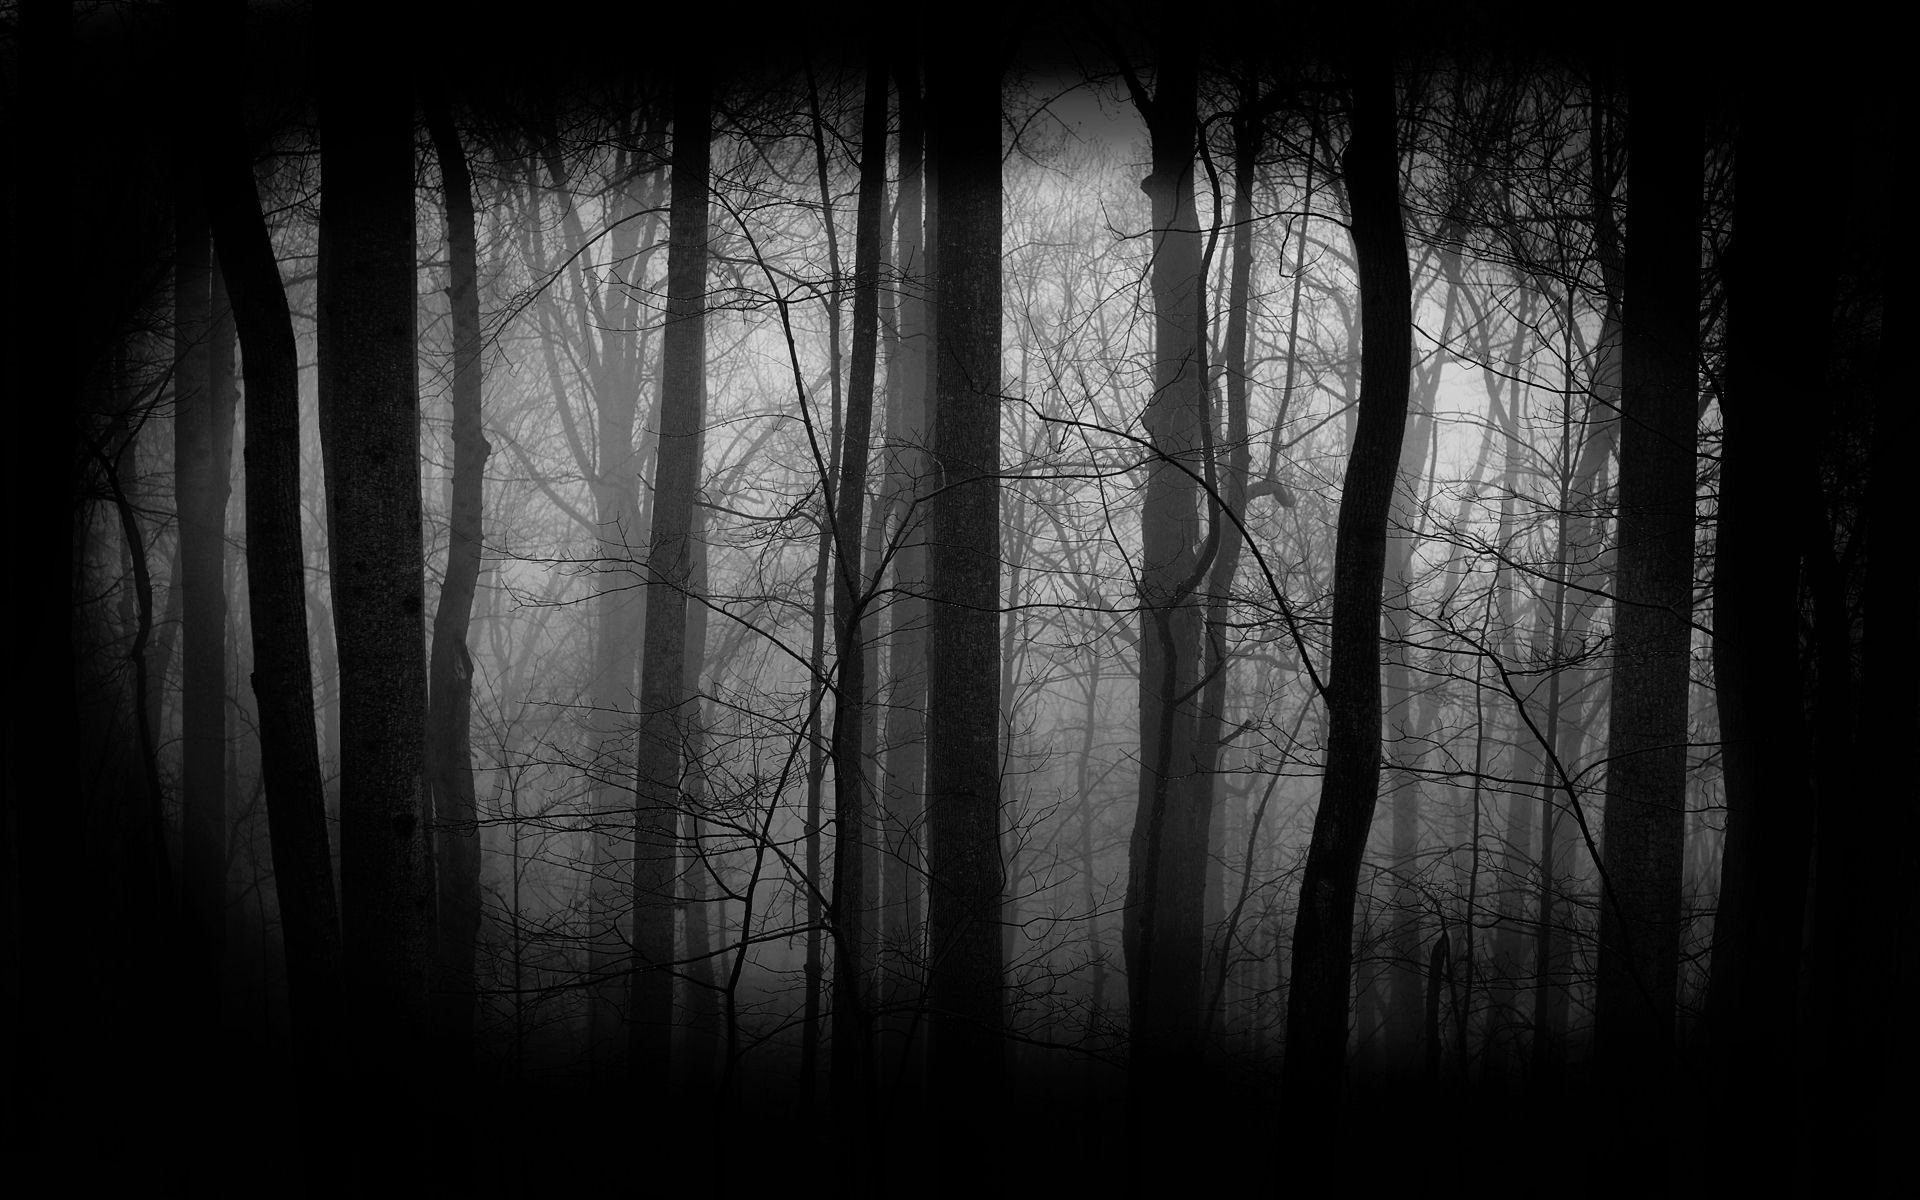 Dark Forest Wallpaper Images amp Pictures   Becuo 1920x1200